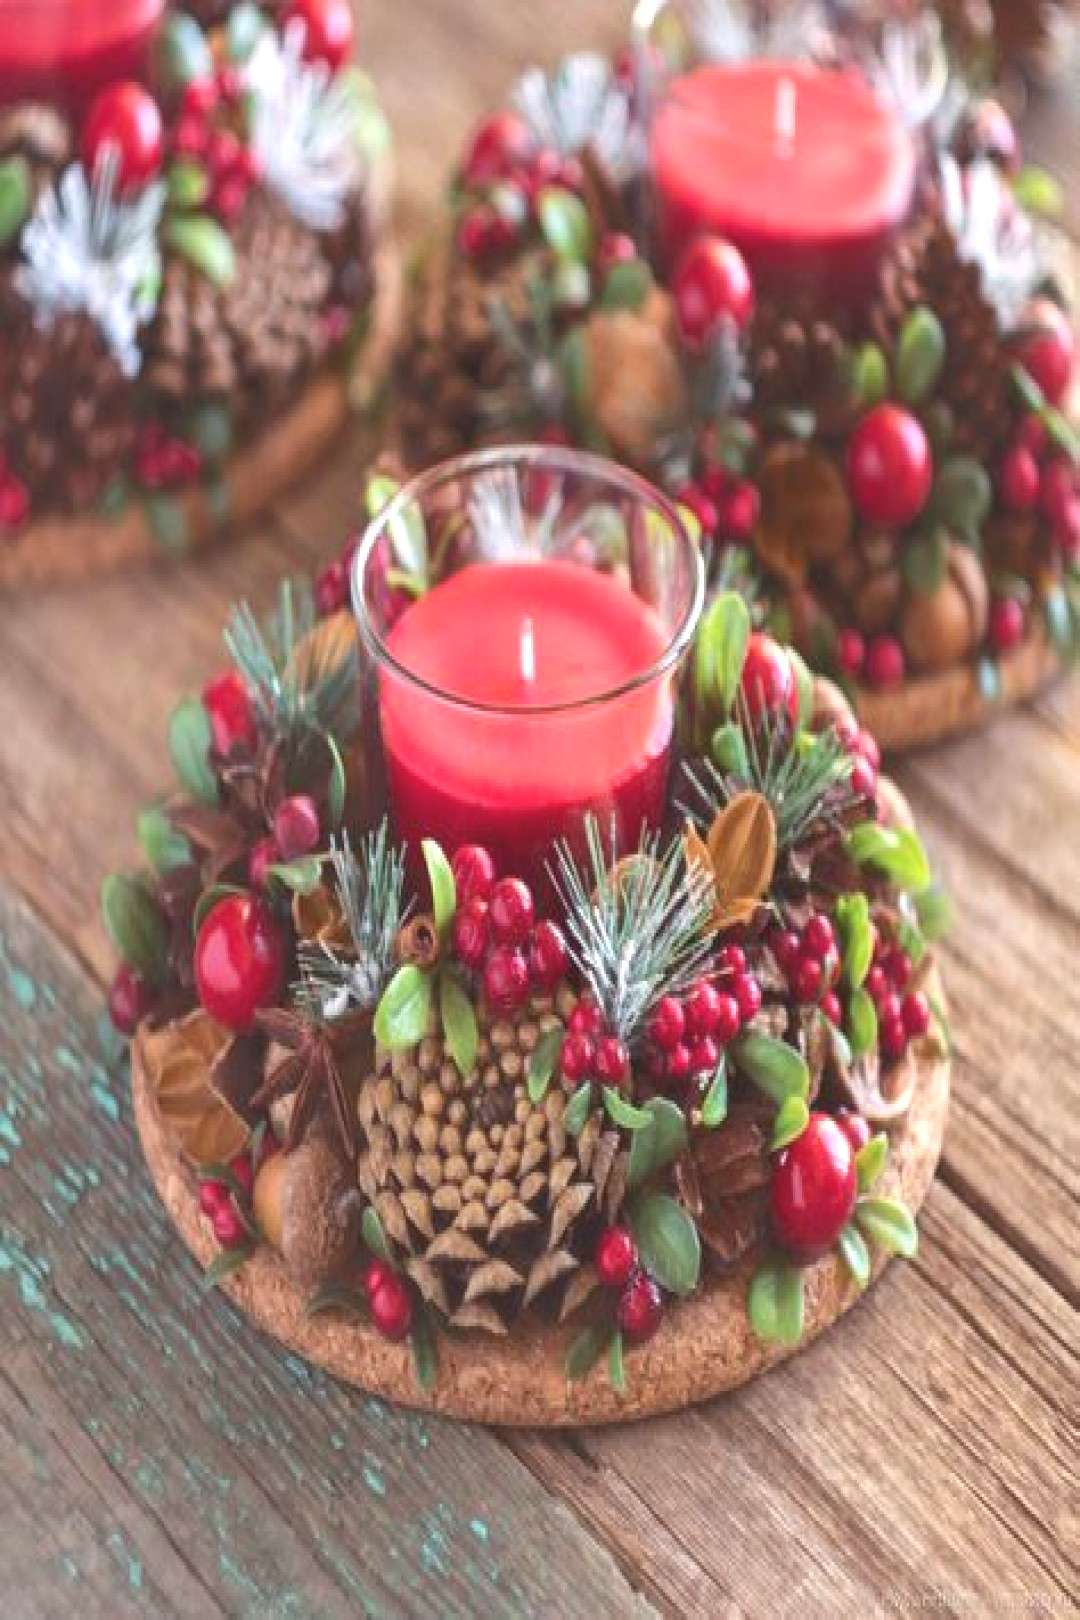 50+ Holiday Red Candlestick Art Design Ideas - 50+ Holiday Red Candlestick Art Design Ideas Table